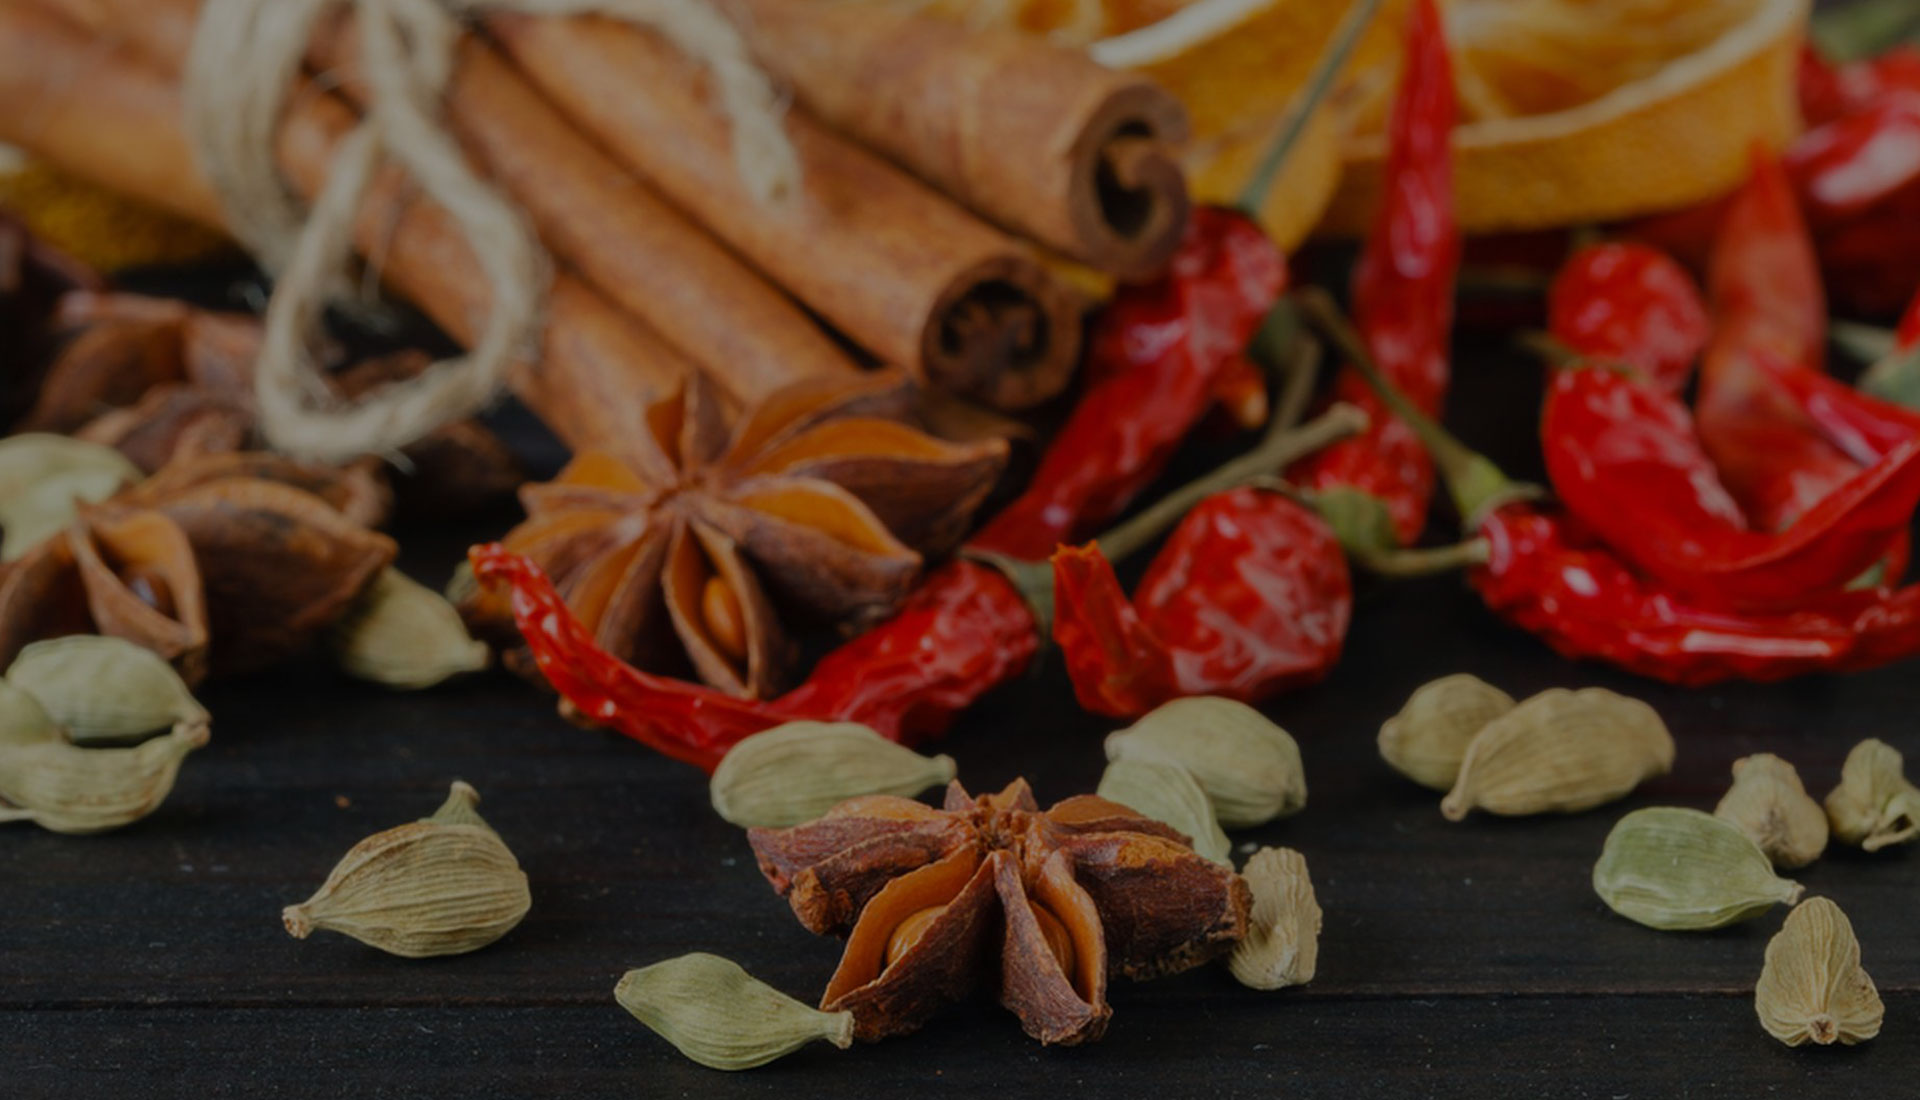 Trading Companies in Dubai, UAE | Herbs and Spices Exporters